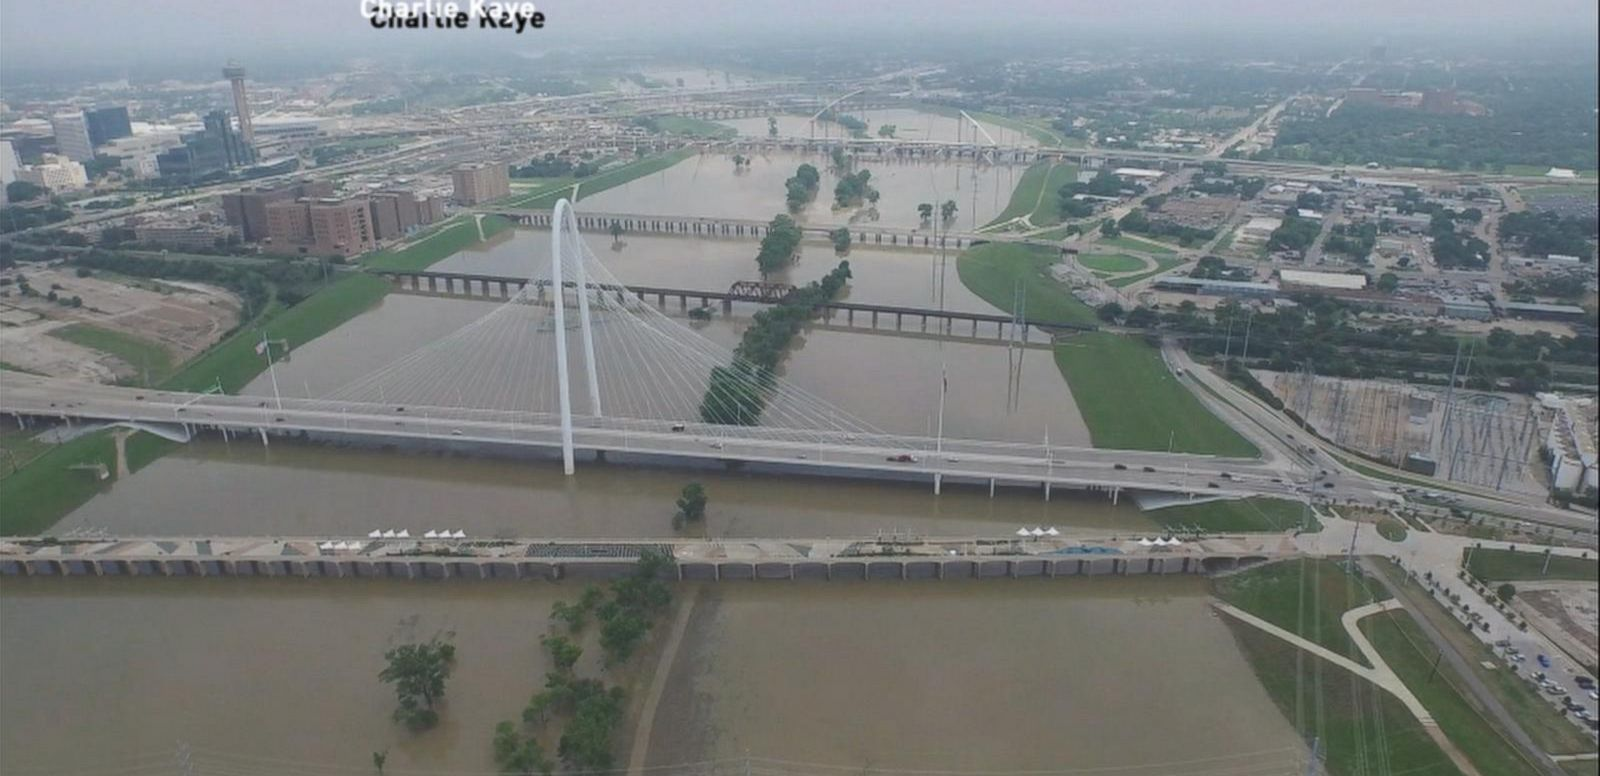 President Obama Orders Federal Aid for Flood-Soaked Texas